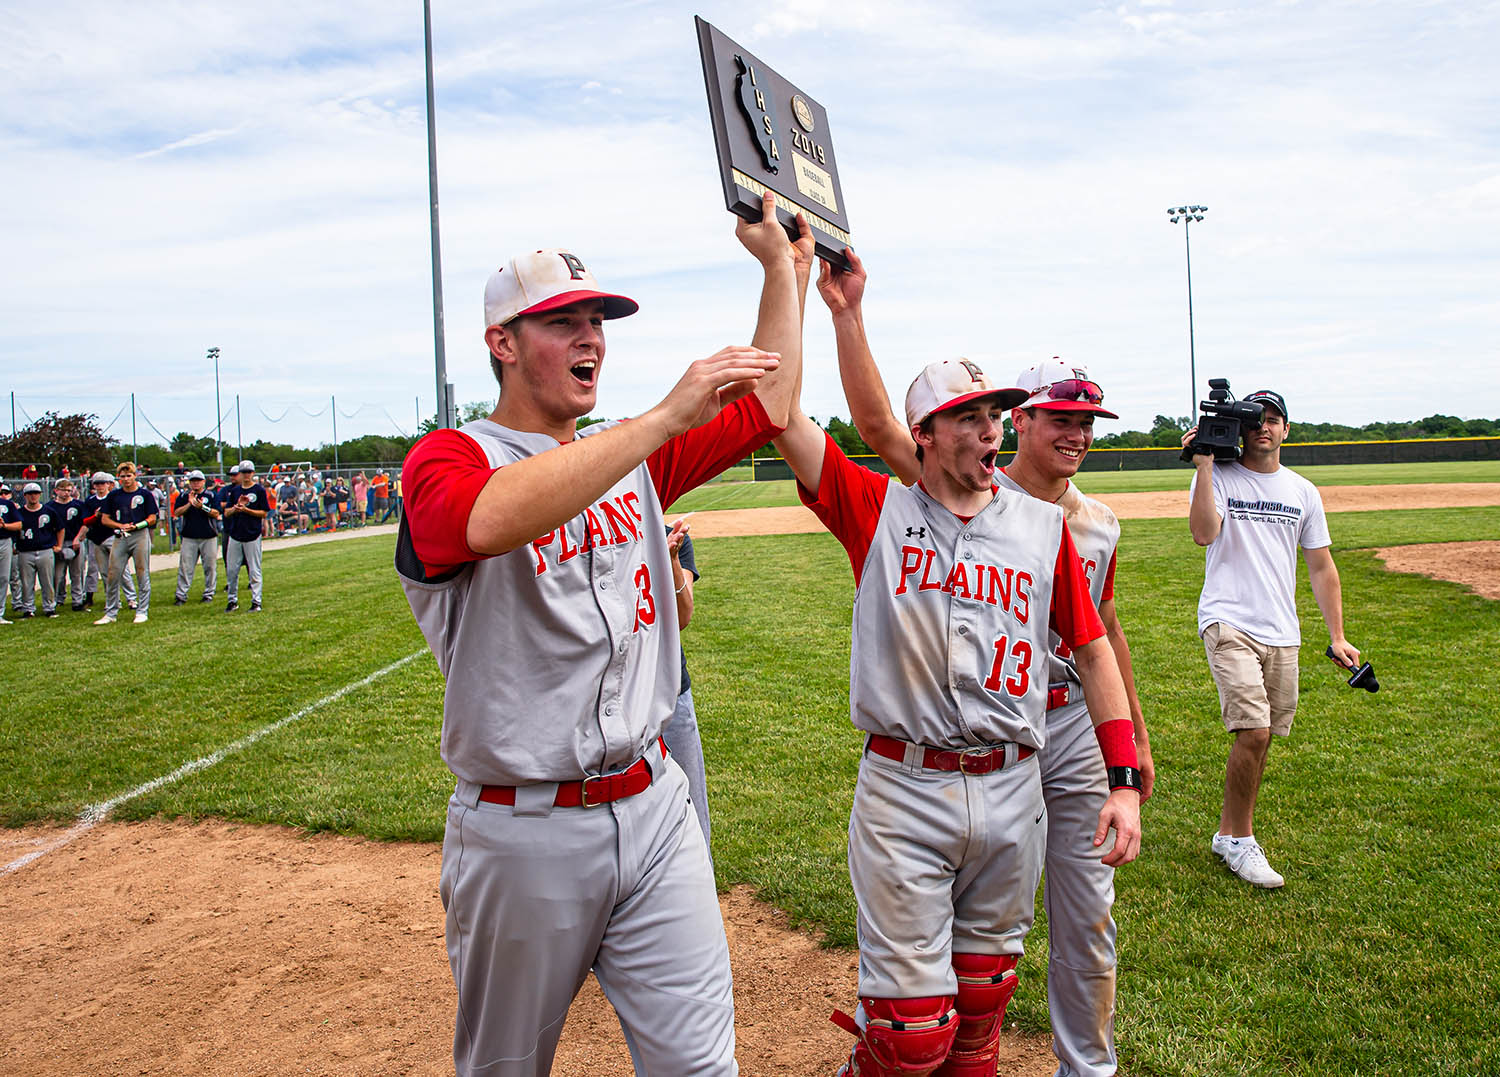 Pleasant Plains' Cam Furbeck (23), Corgan Greer (13) and Joe Lee (14) celebrate with the championship plaque after defeating New Berlin 11-4 in the Class 2A Pleasant Plains Sectional championship game at Reiser Field, Saturday, May 25, 2019, in Pleasant Plains, Ill. [Justin L. Fowler/The State Journal-Register]